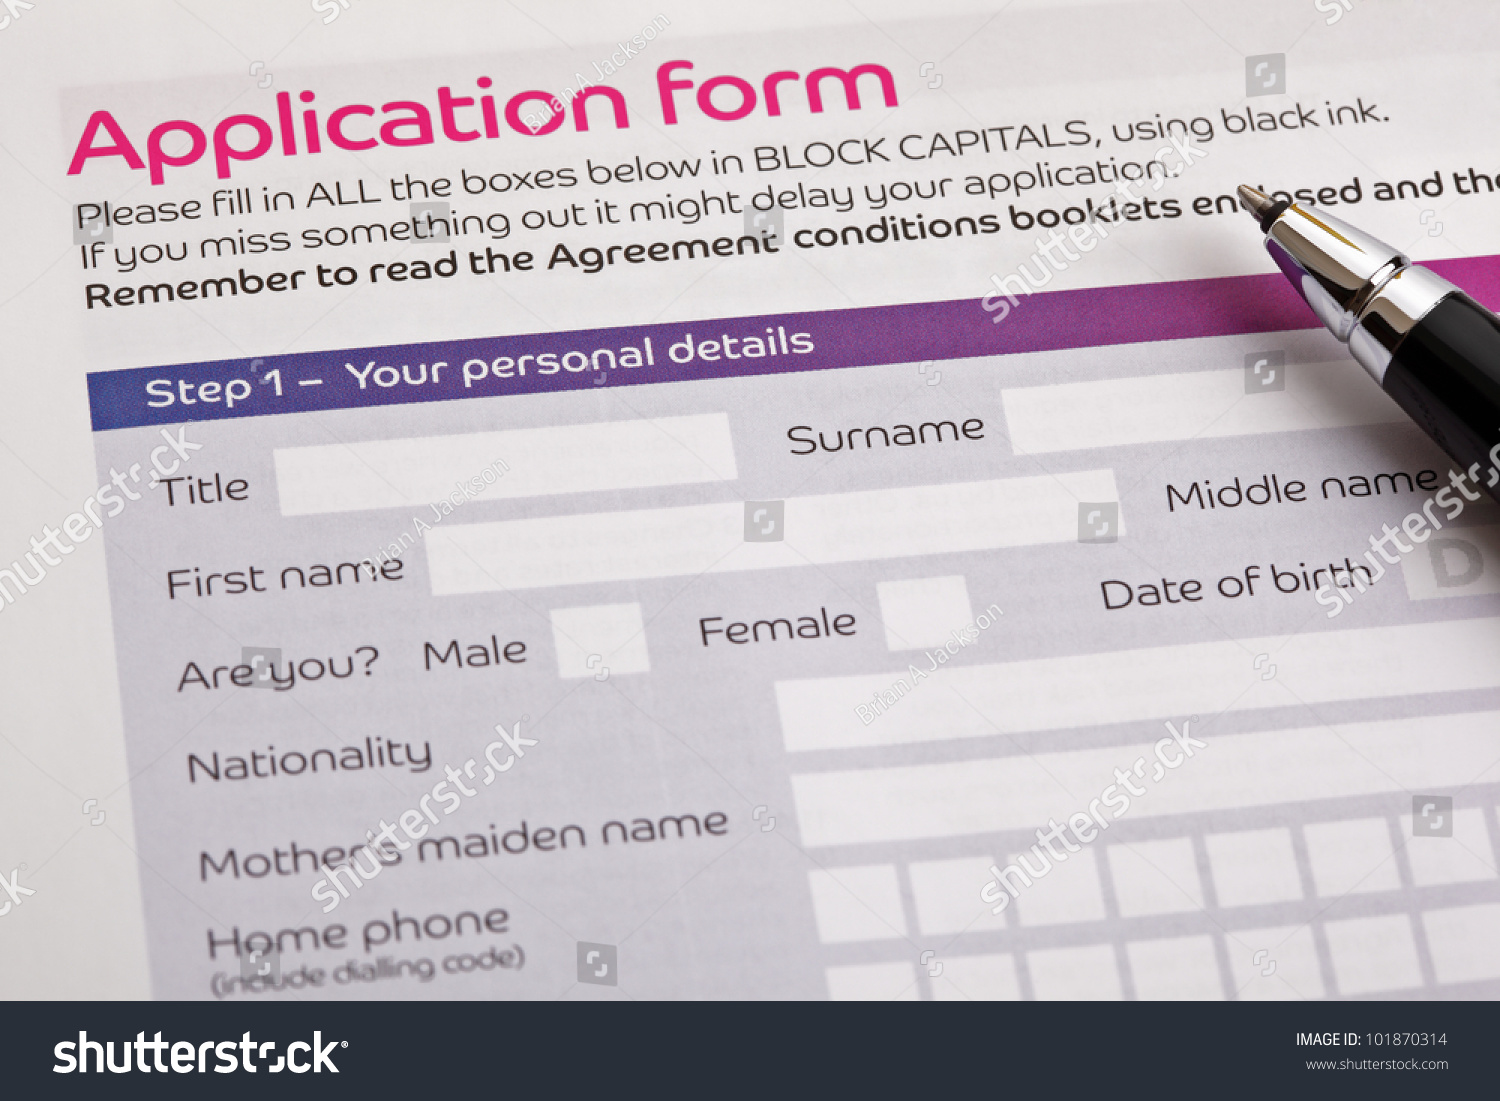 application form concept applying job finance stock photo application form concept for applying for a job finance loan mortgage or a